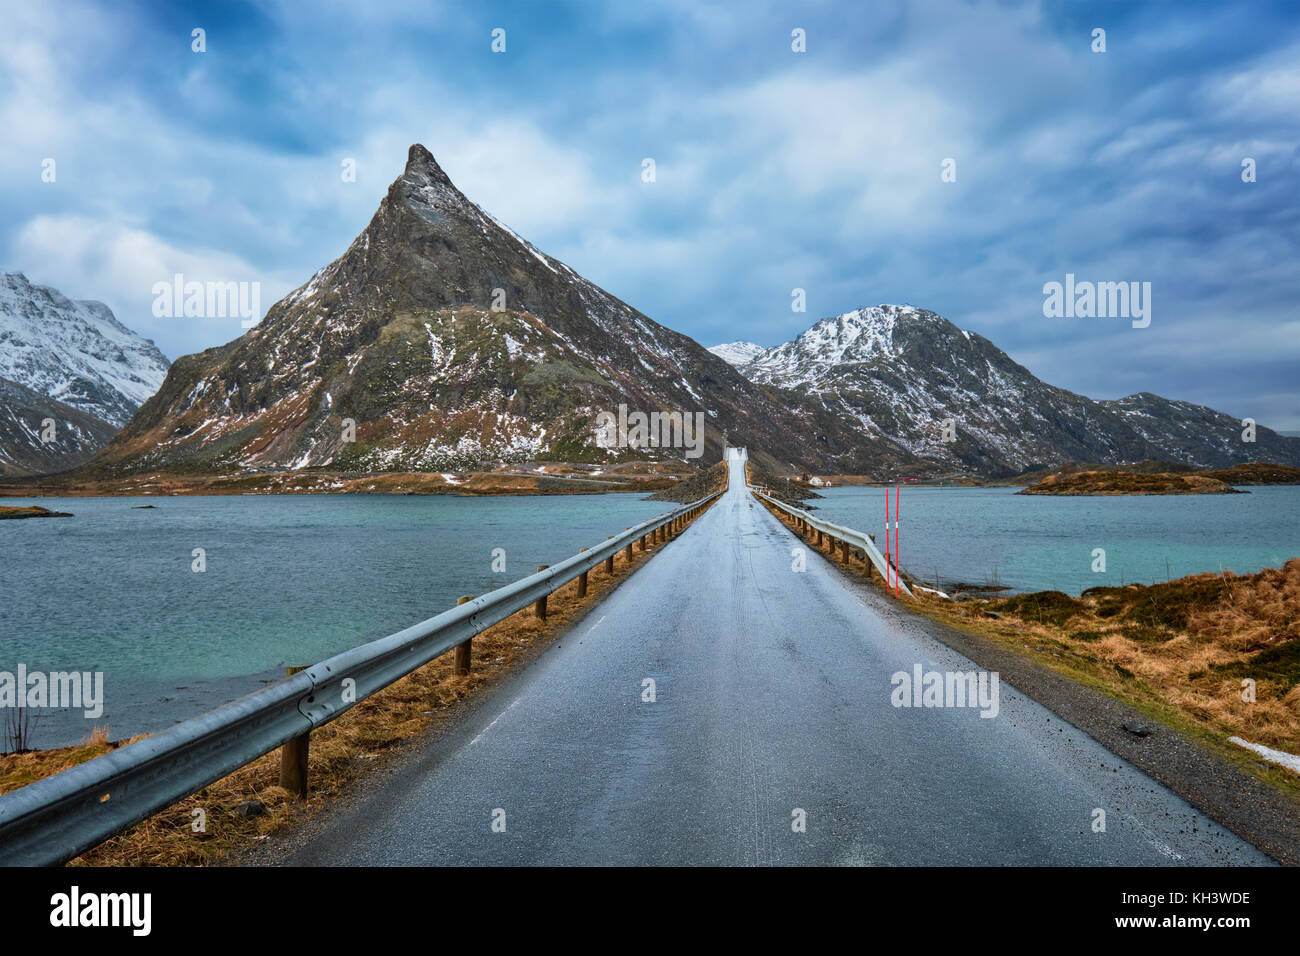 Road in Norway - Stock Image